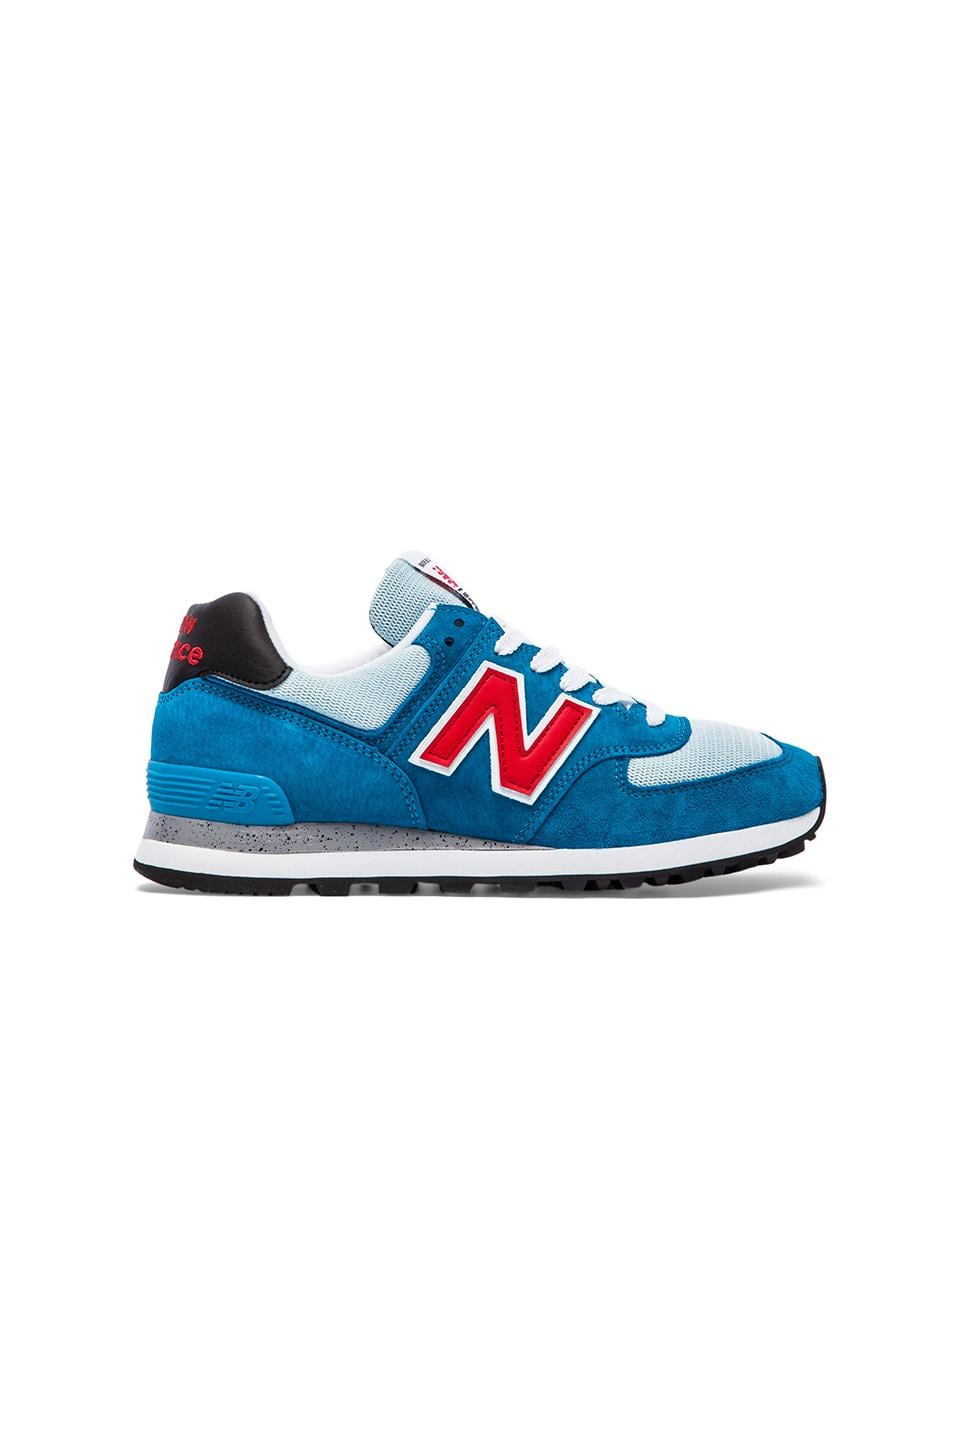 New Balance Made in USA US574 in Blue Infinity